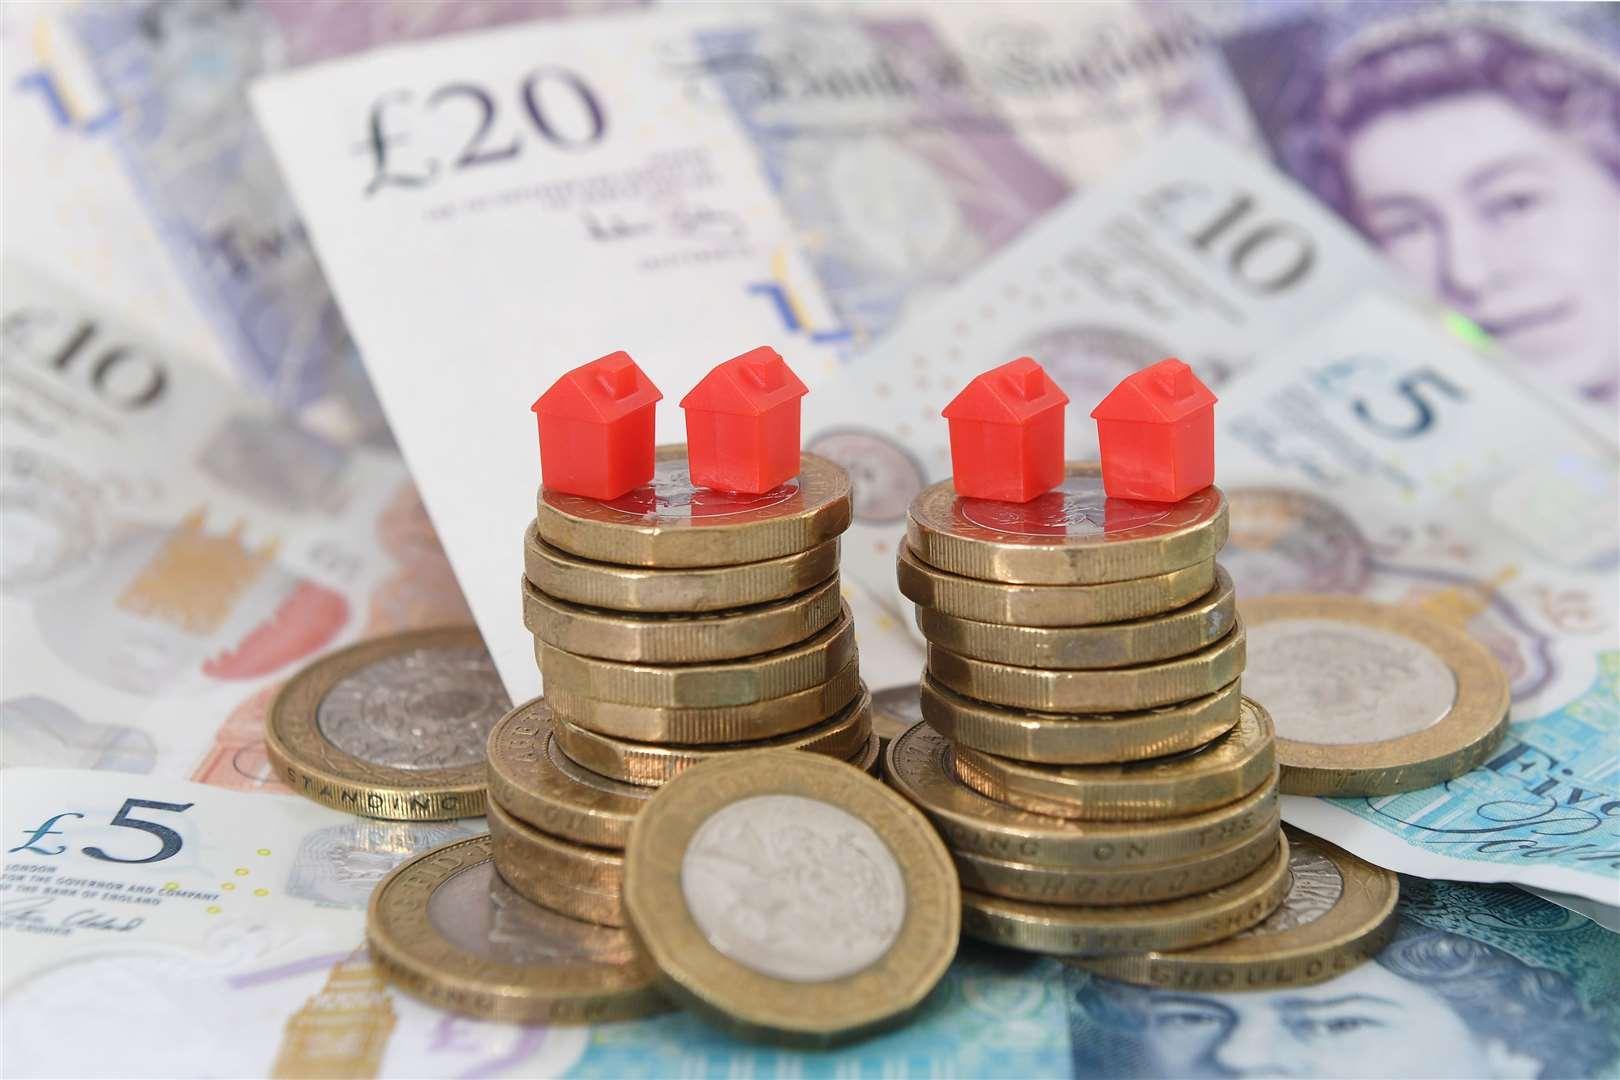 Investment of key funding pots has helped fuel the creation of homes and jobs